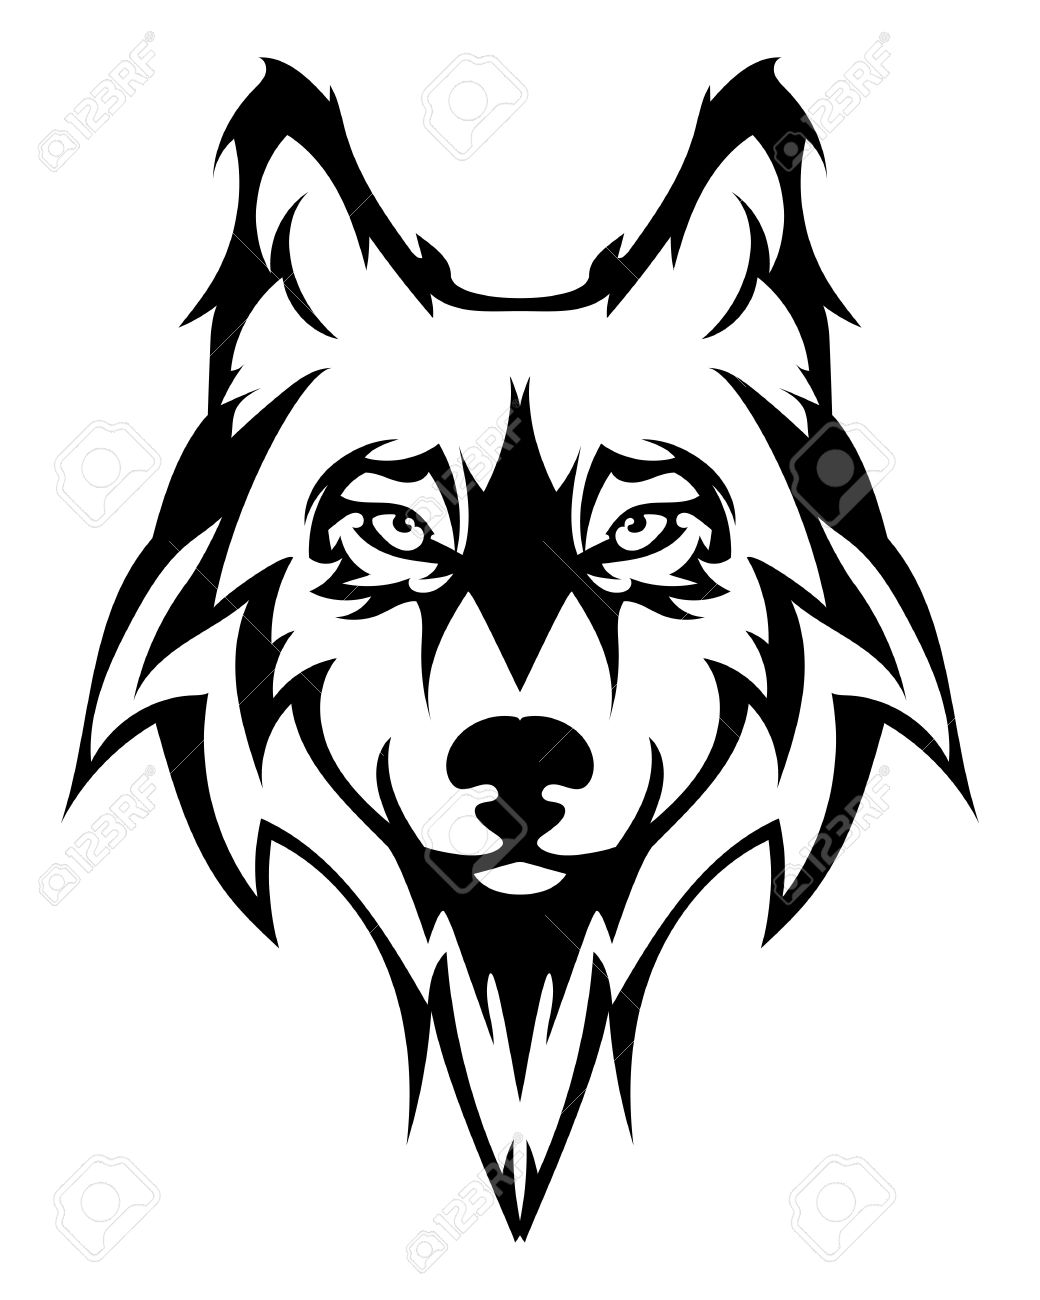 Wolves face clipart picture library library Wolf Face Clipart | Free download best Wolf Face Clipart on ... picture library library